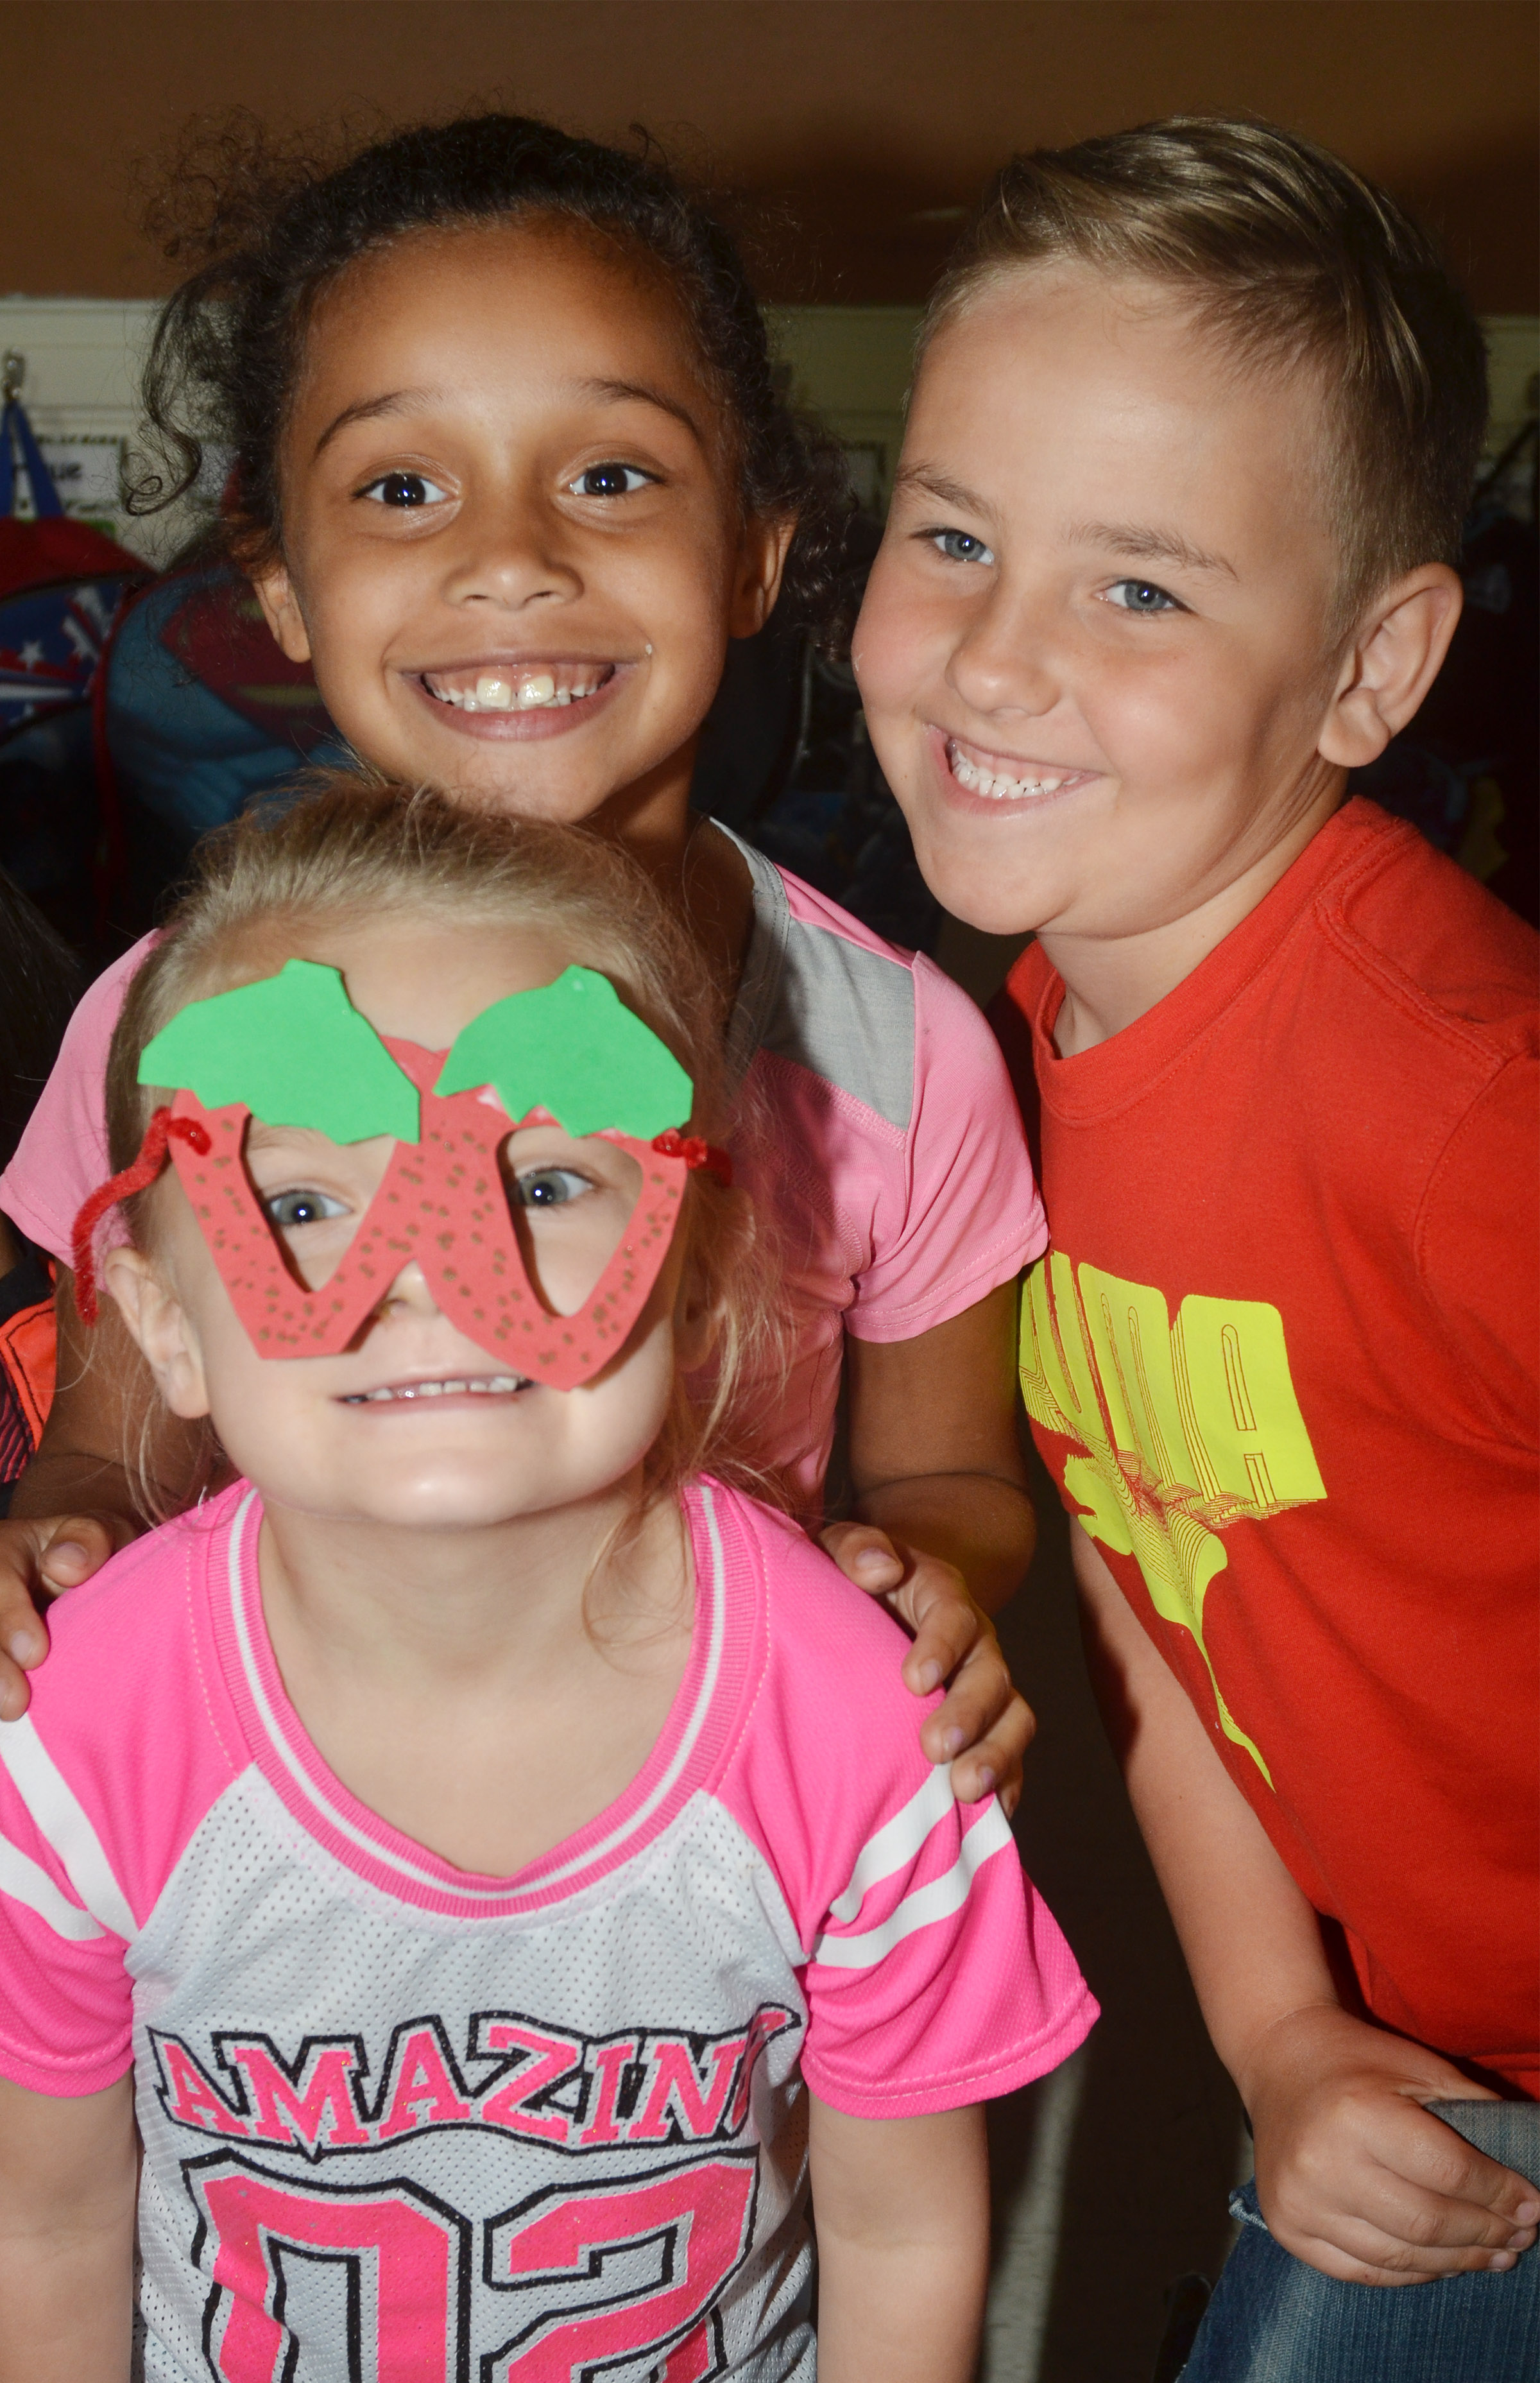 CES kindergartener Miley Orberson wears her strawberry glasses in a photo with classmates Jyra Welch and Braxton Rhodes.